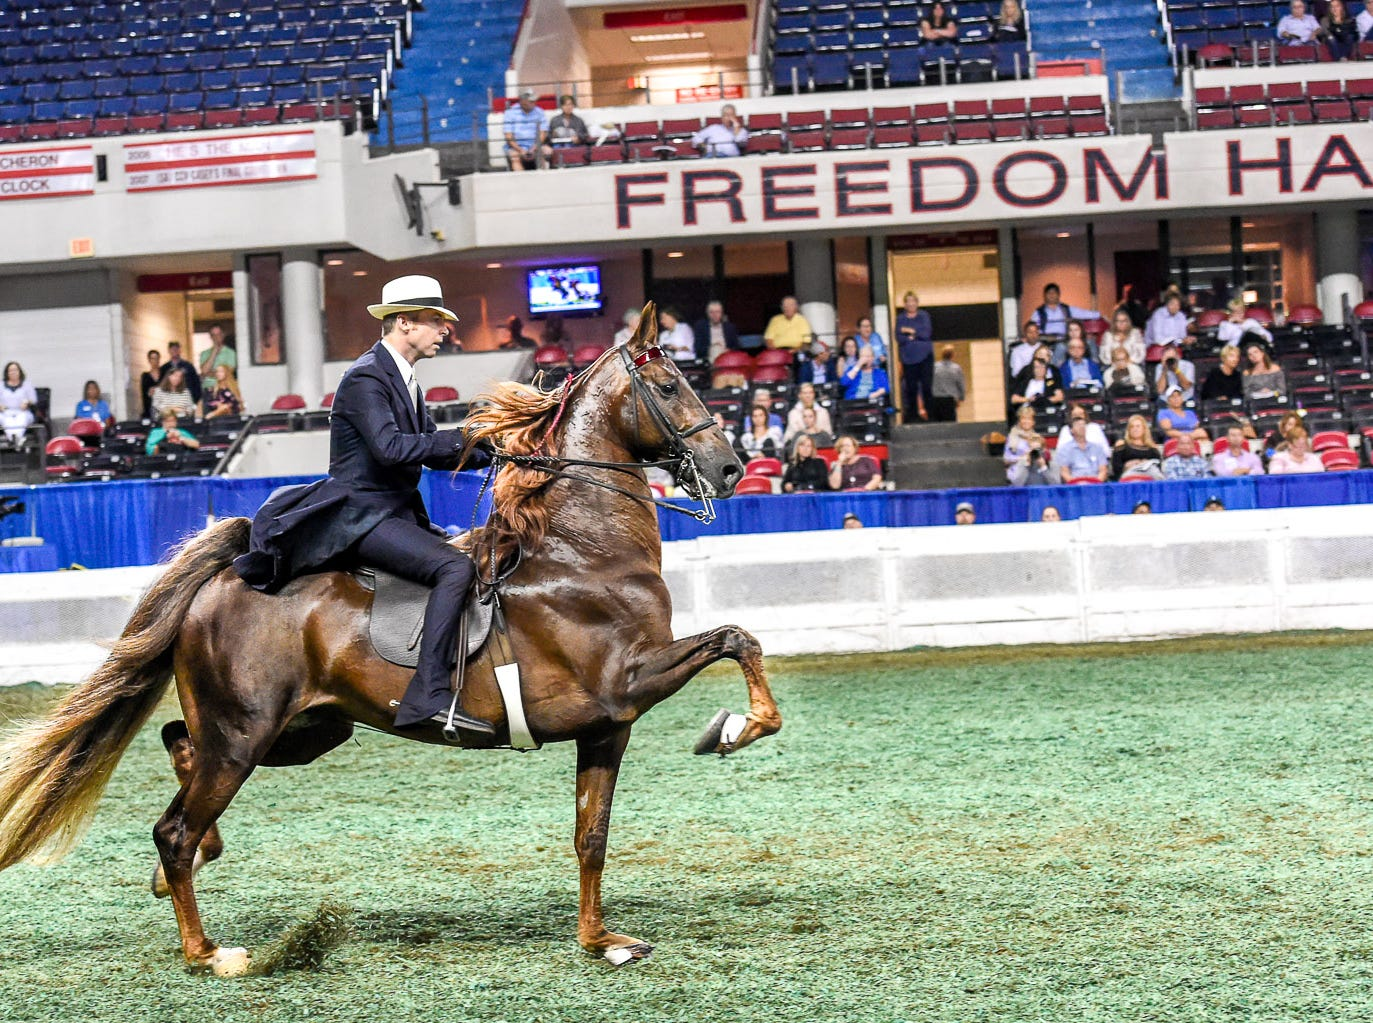 Reining World Grand Champion 5 Gaited Champion Top Of The Mark and trainer Tre' Lee trot into Freedom Hall to win the qualifying class